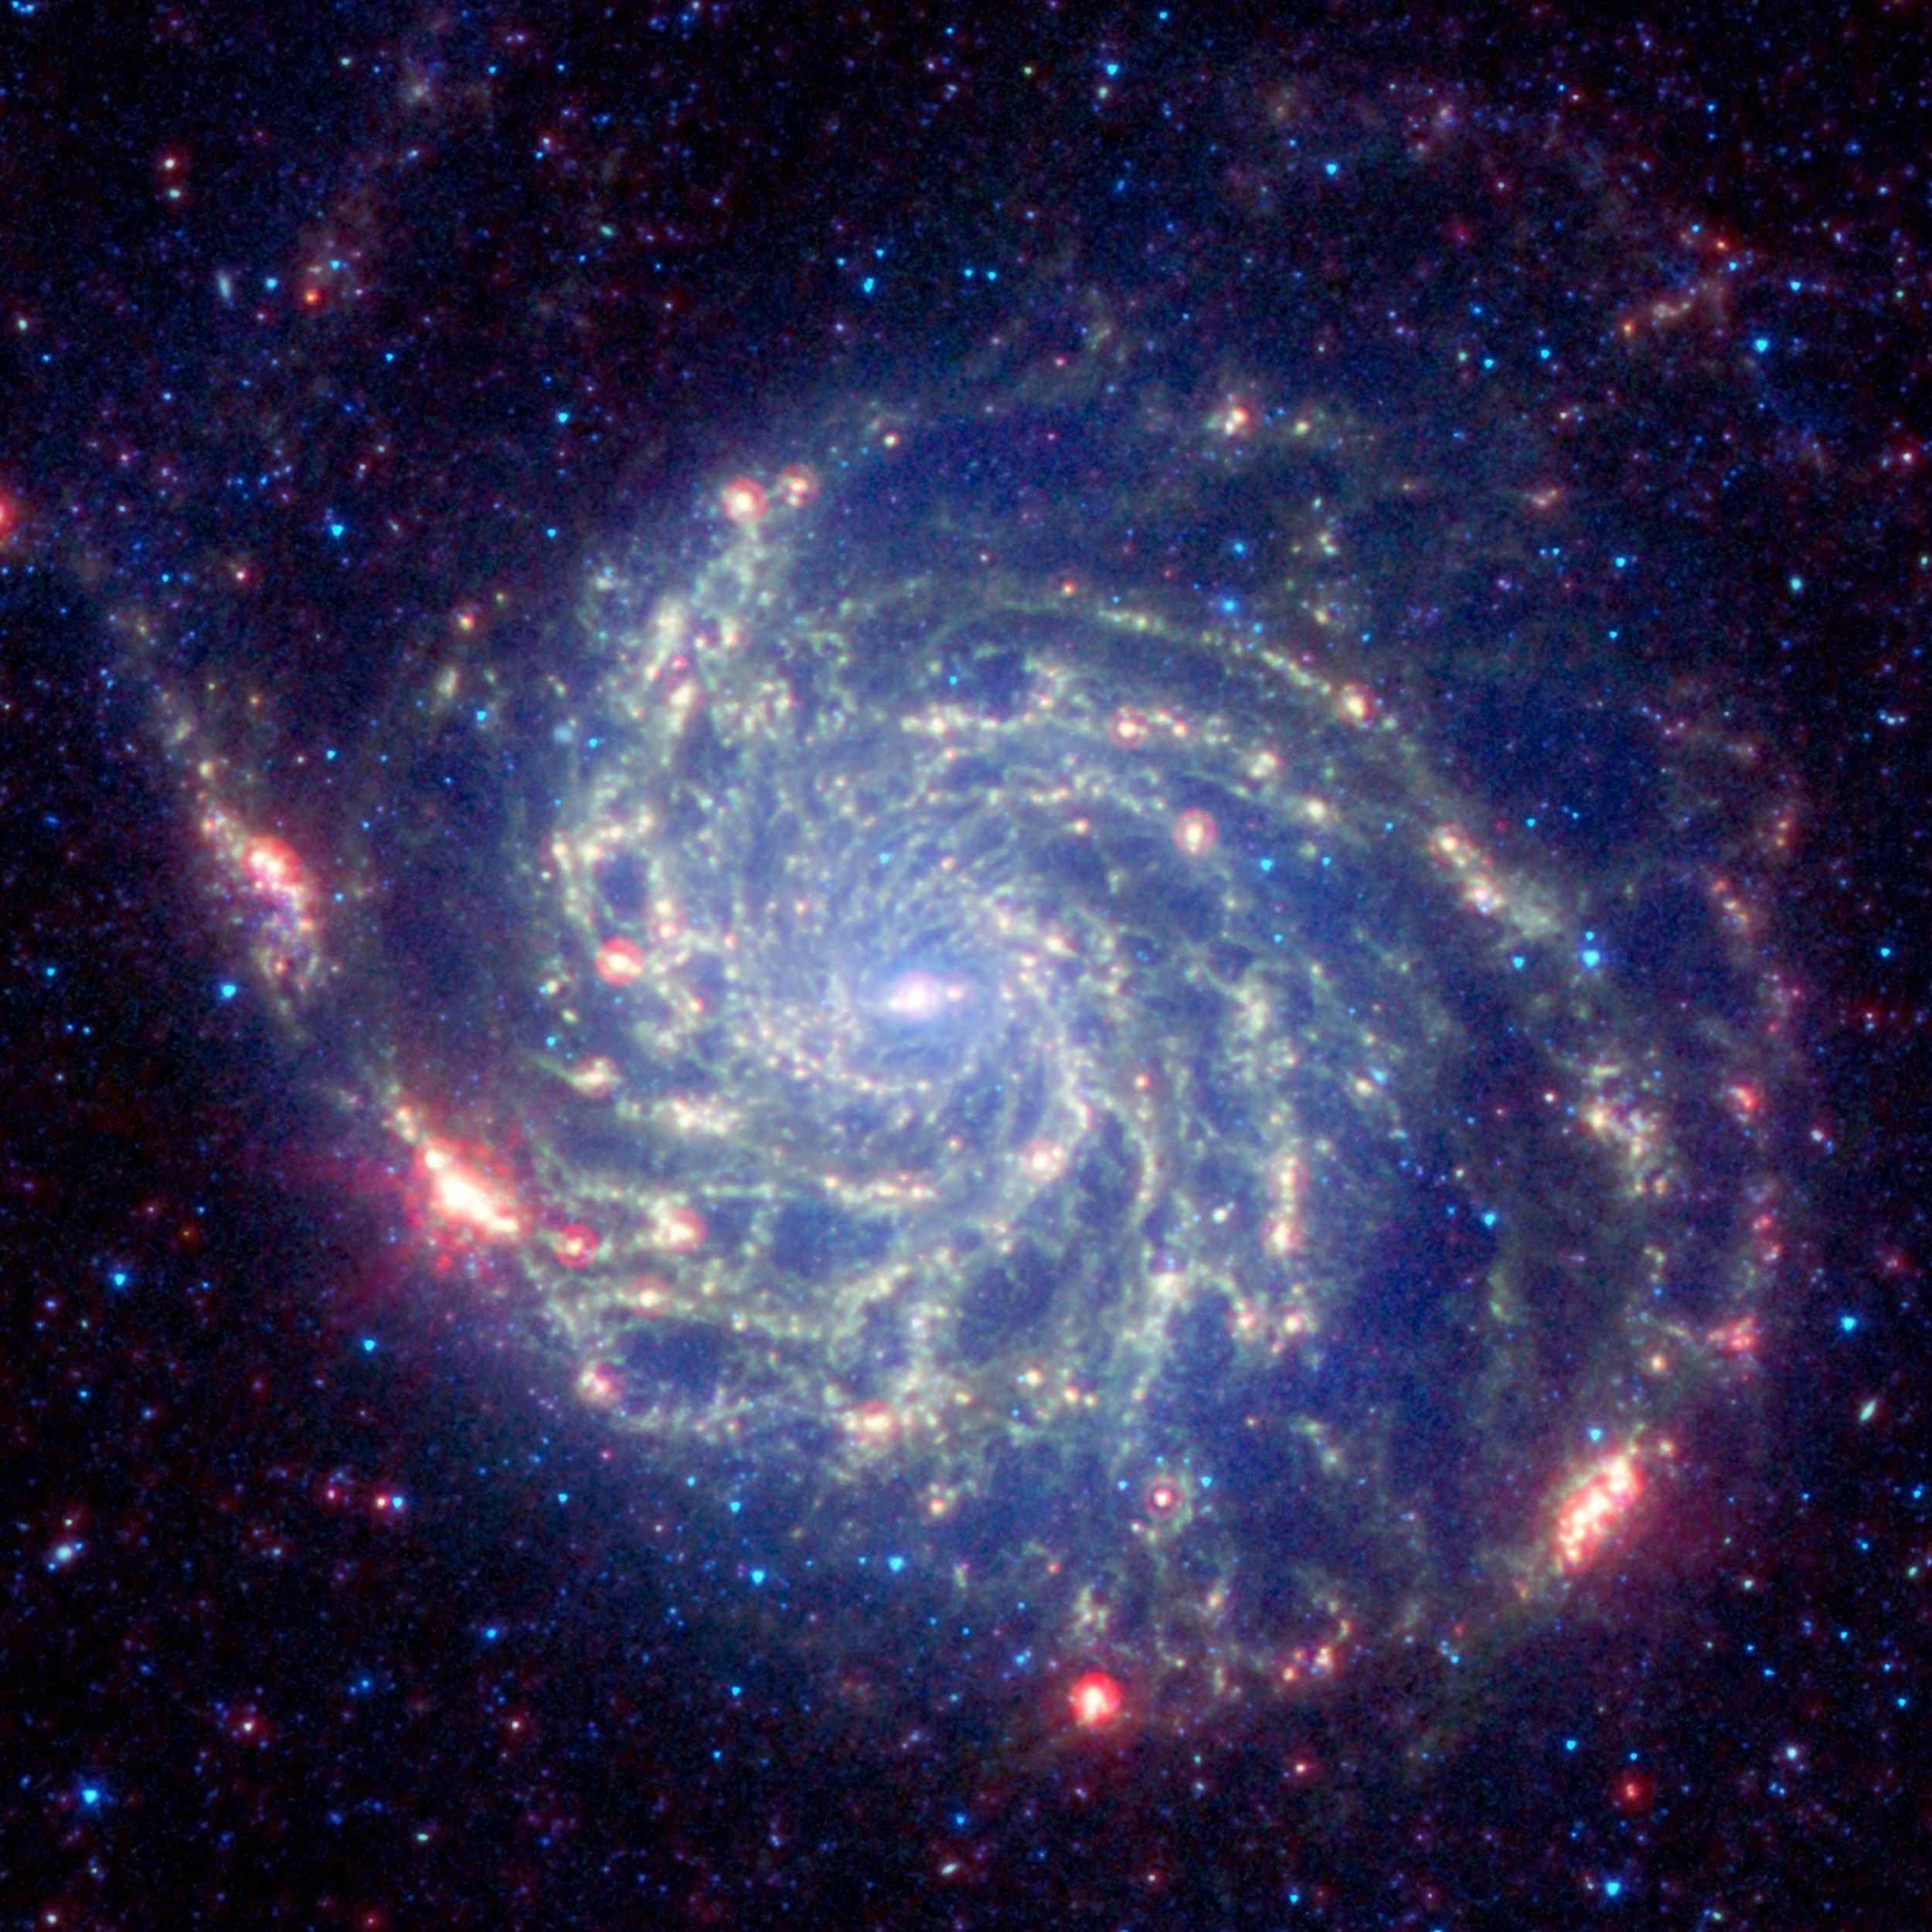 Infrared photograph of Messier 101 galaxy